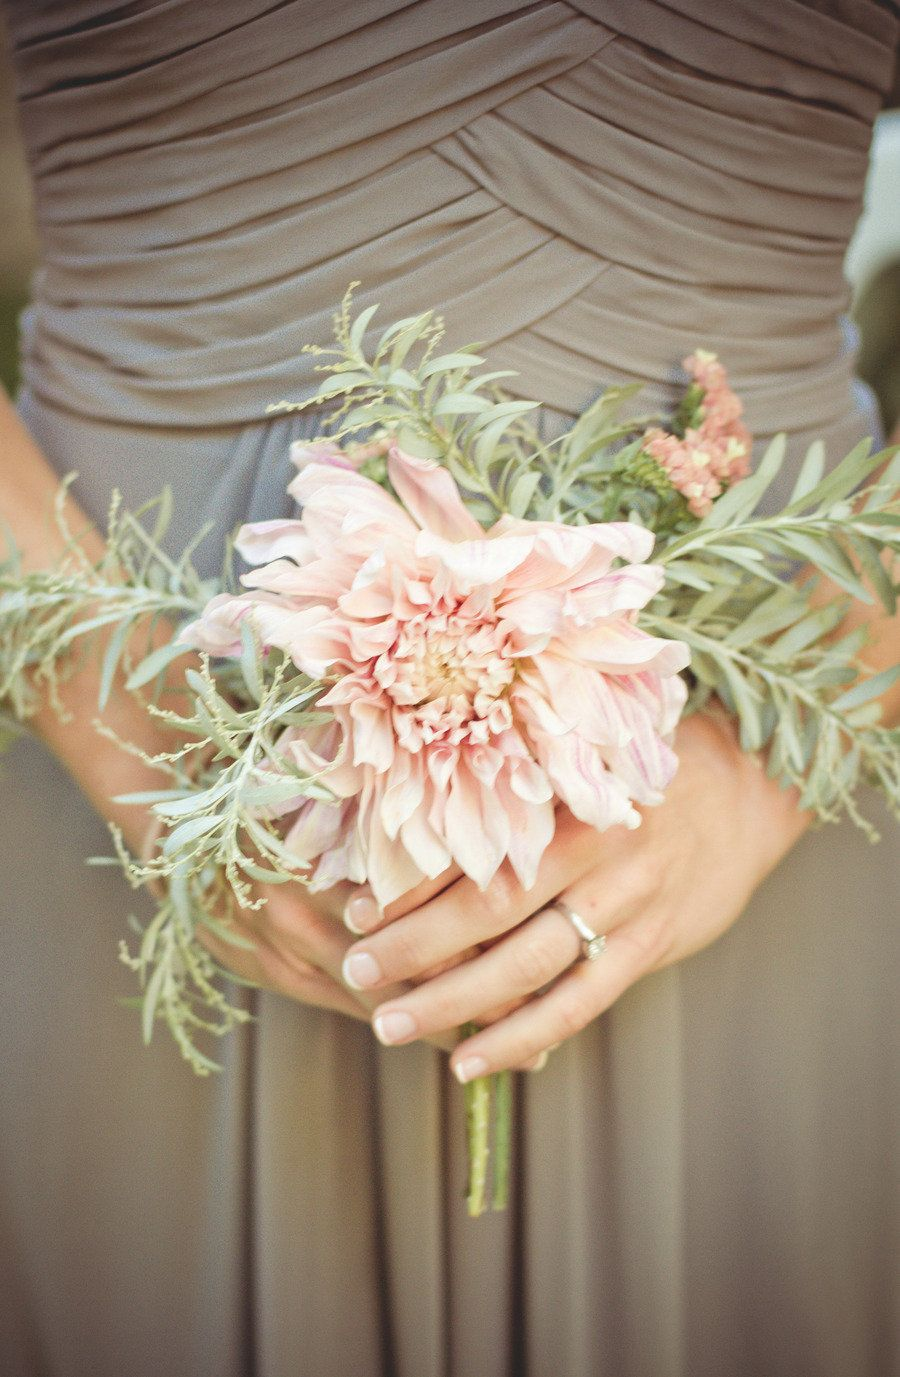 Southern california wedding from matt grashaw shurie saxelby a feathery dusty miller with one dahlia single flower bouquetflower izmirmasajfo Choice Image